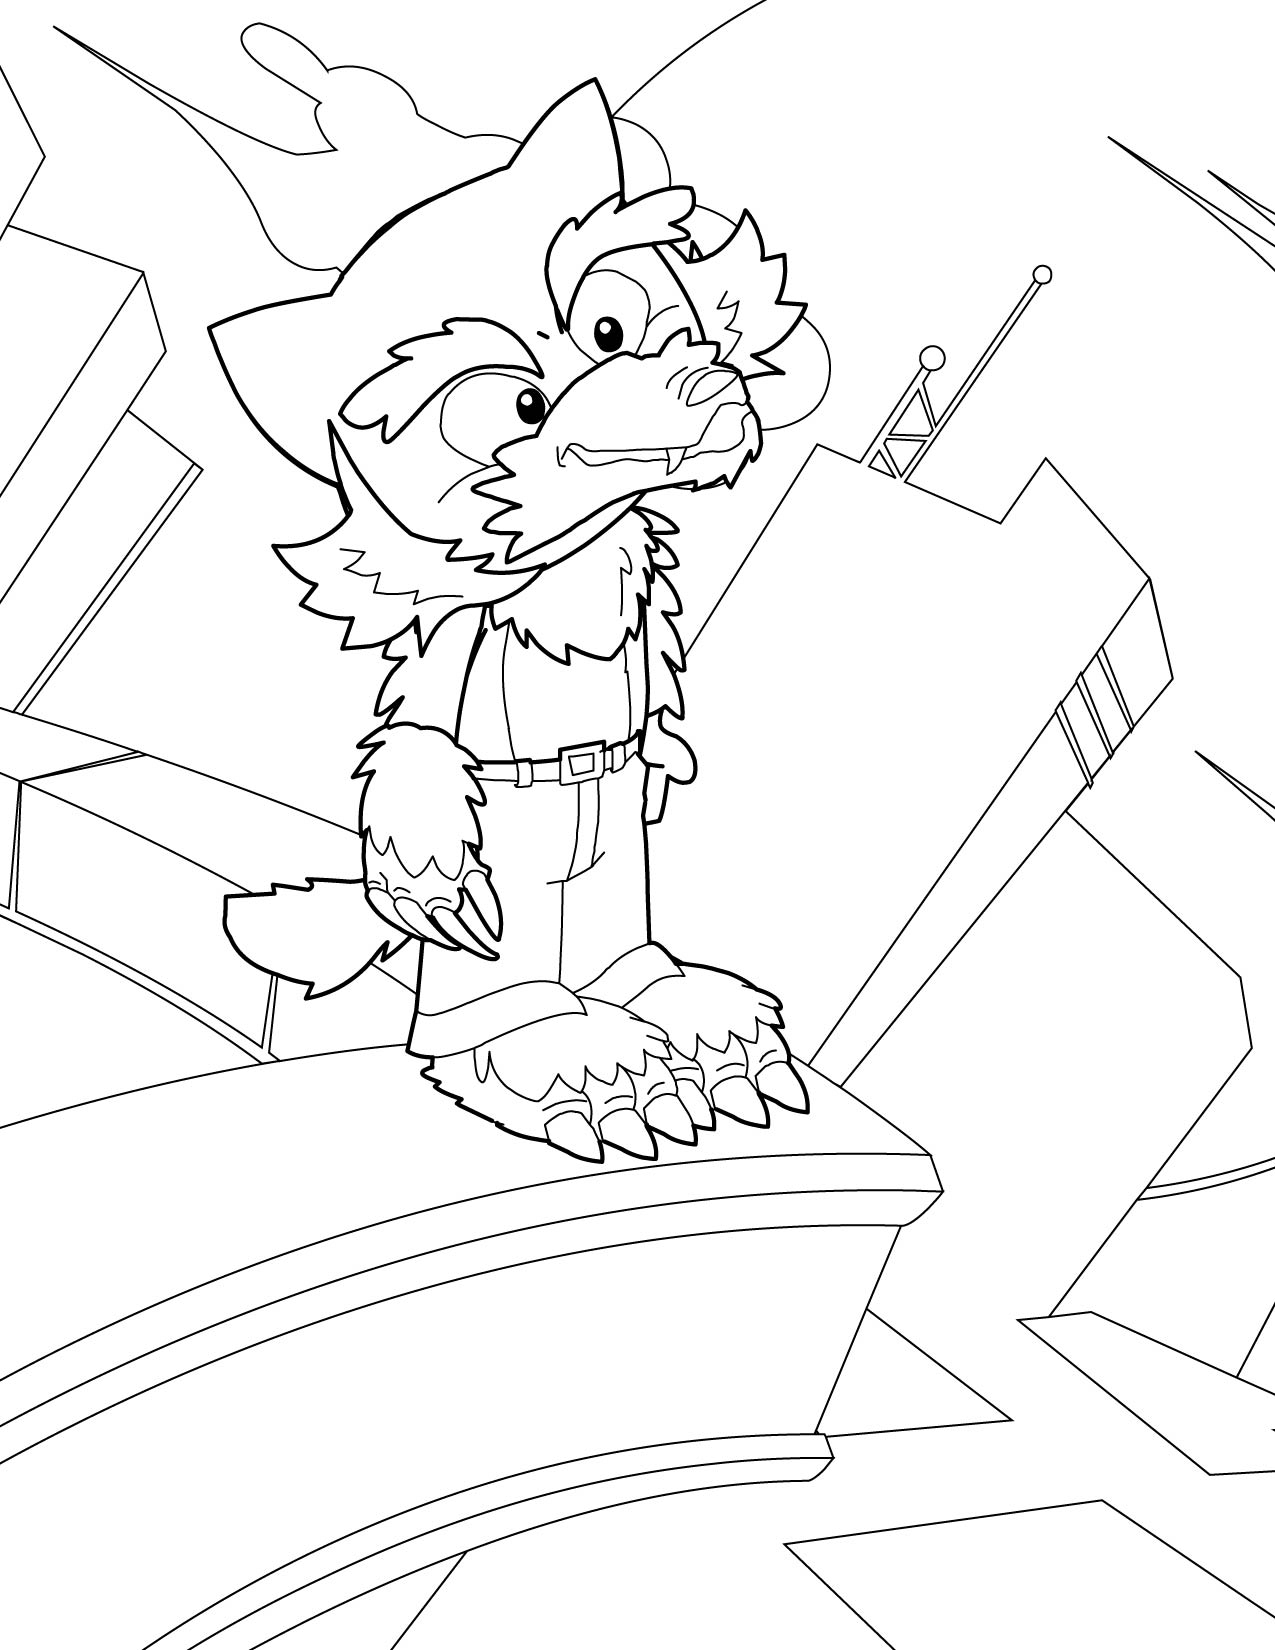 halloween coloring pages coloring pages werewolf - Halloween Werewolf Coloring Pages